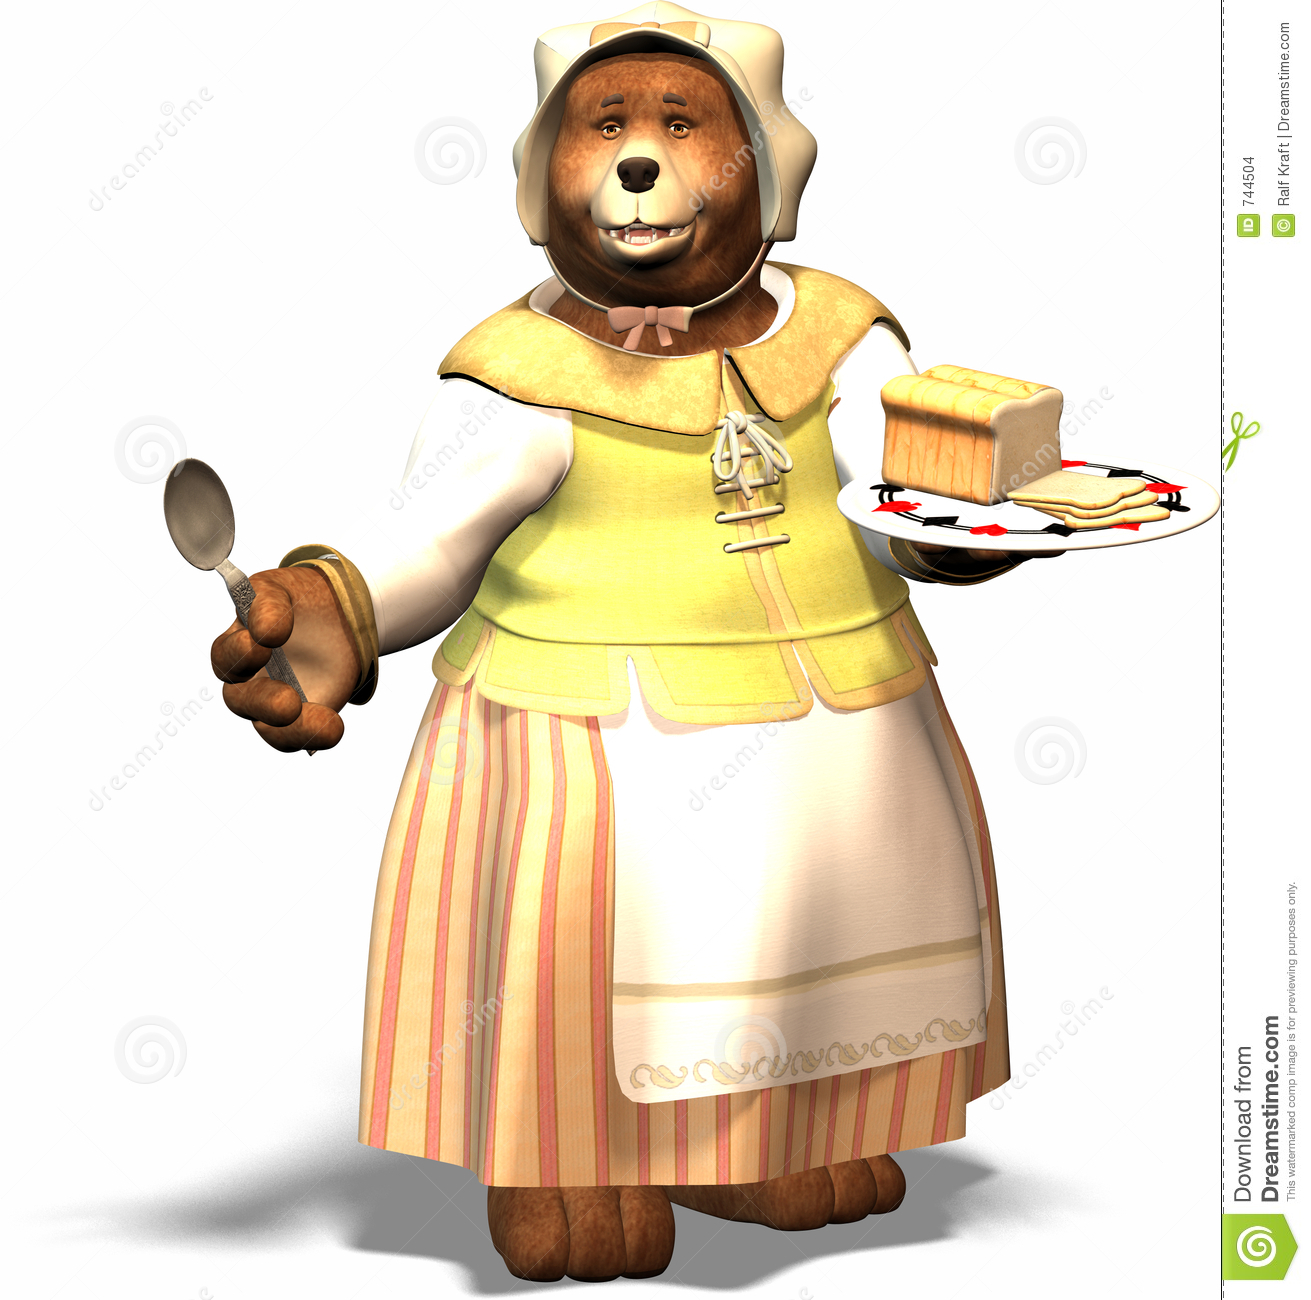 Mom Bear Stock Images - Image: 744504